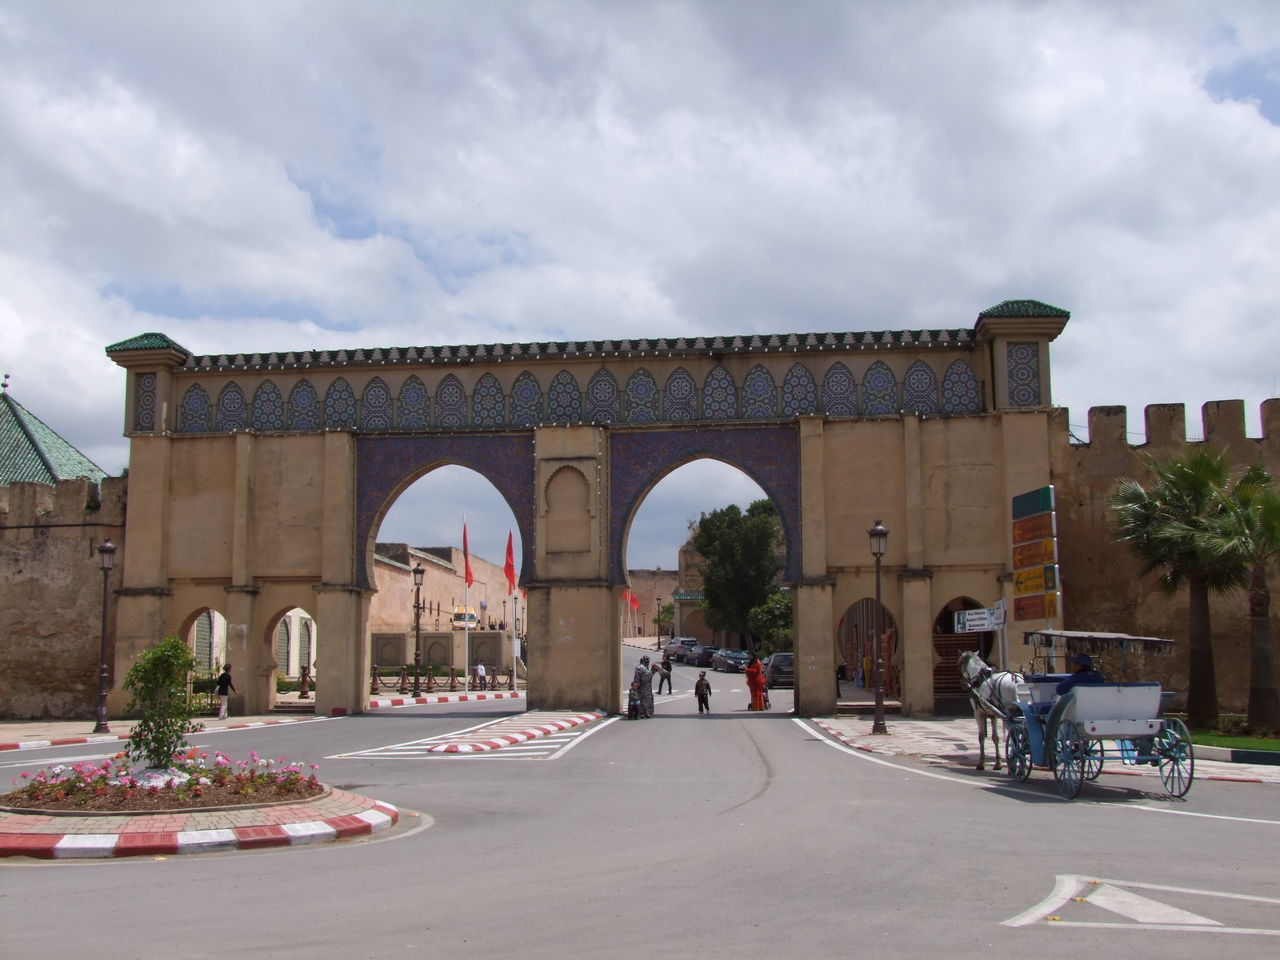 Historic Gateway Arches Architecture City Composition Entrance Entrance Gate Famous Place Gateway Historical Building Historical Place Horse And Carriage Main Entrance Meknès Moroccan Architecture Moroccan Style Morocco No People Outdoor Photography Road Roundabout Sunlight And Shade Tourist Attraction  Tourist Destination Tree White Clouds